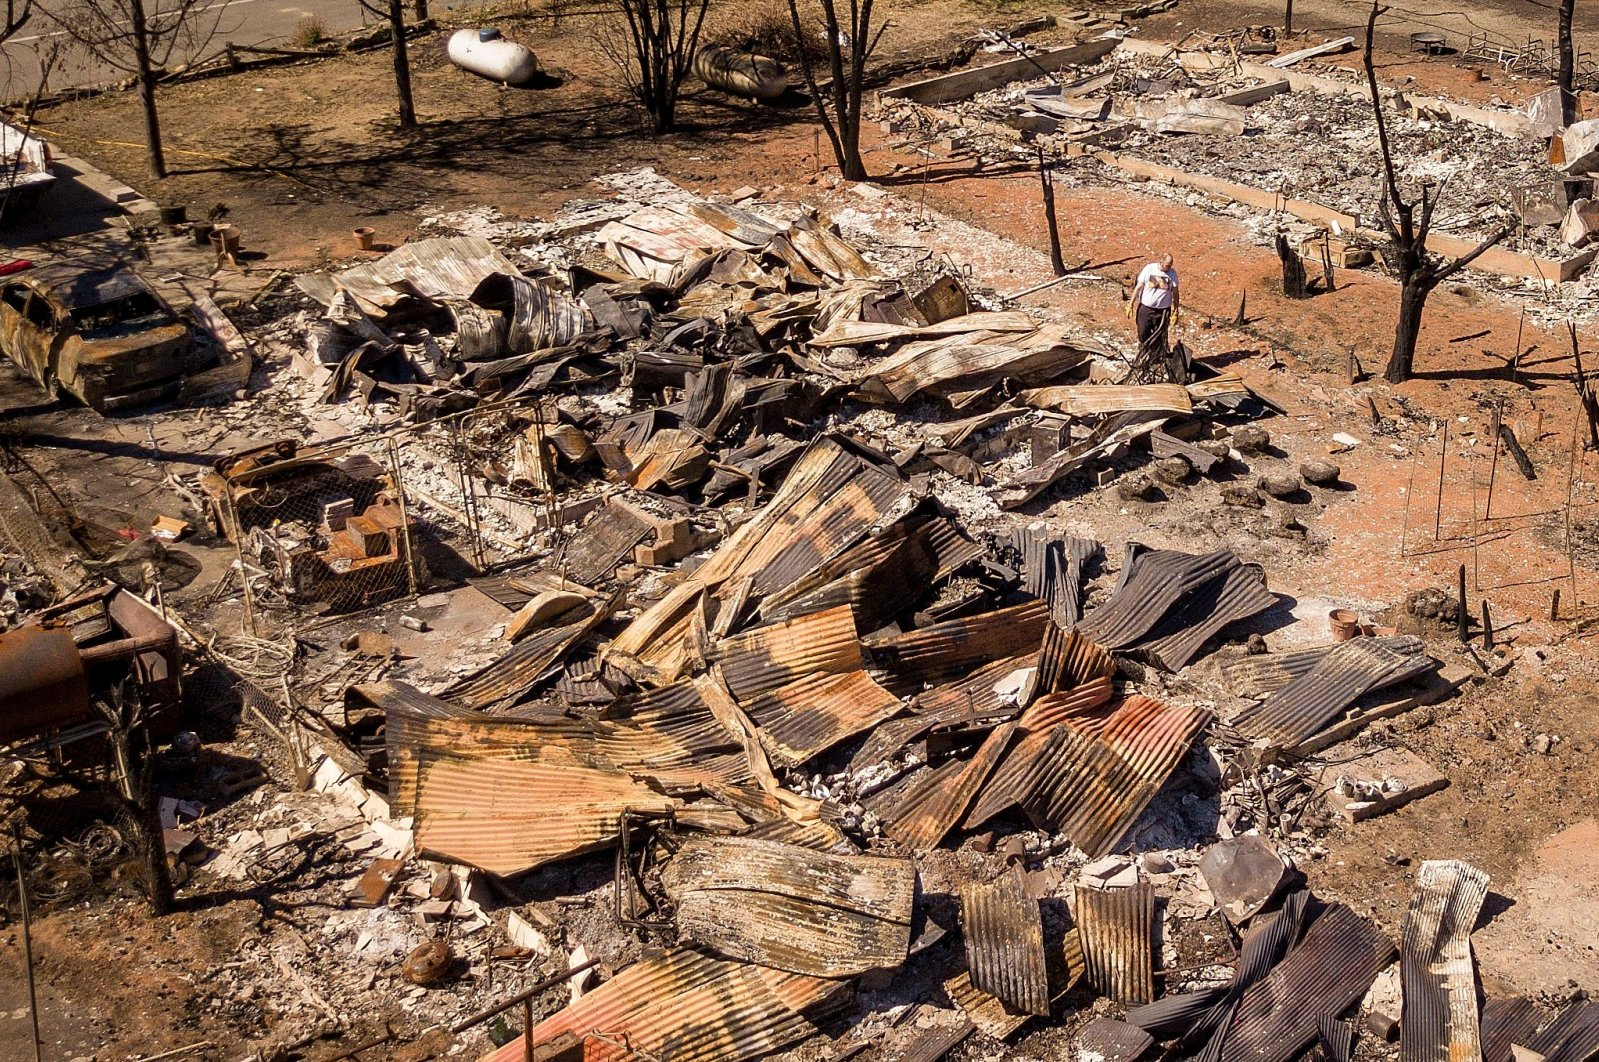 A resident sifts through the remains of a home in Greenville, California, U.S., Sept. 24, 2021. (AFP Photo)